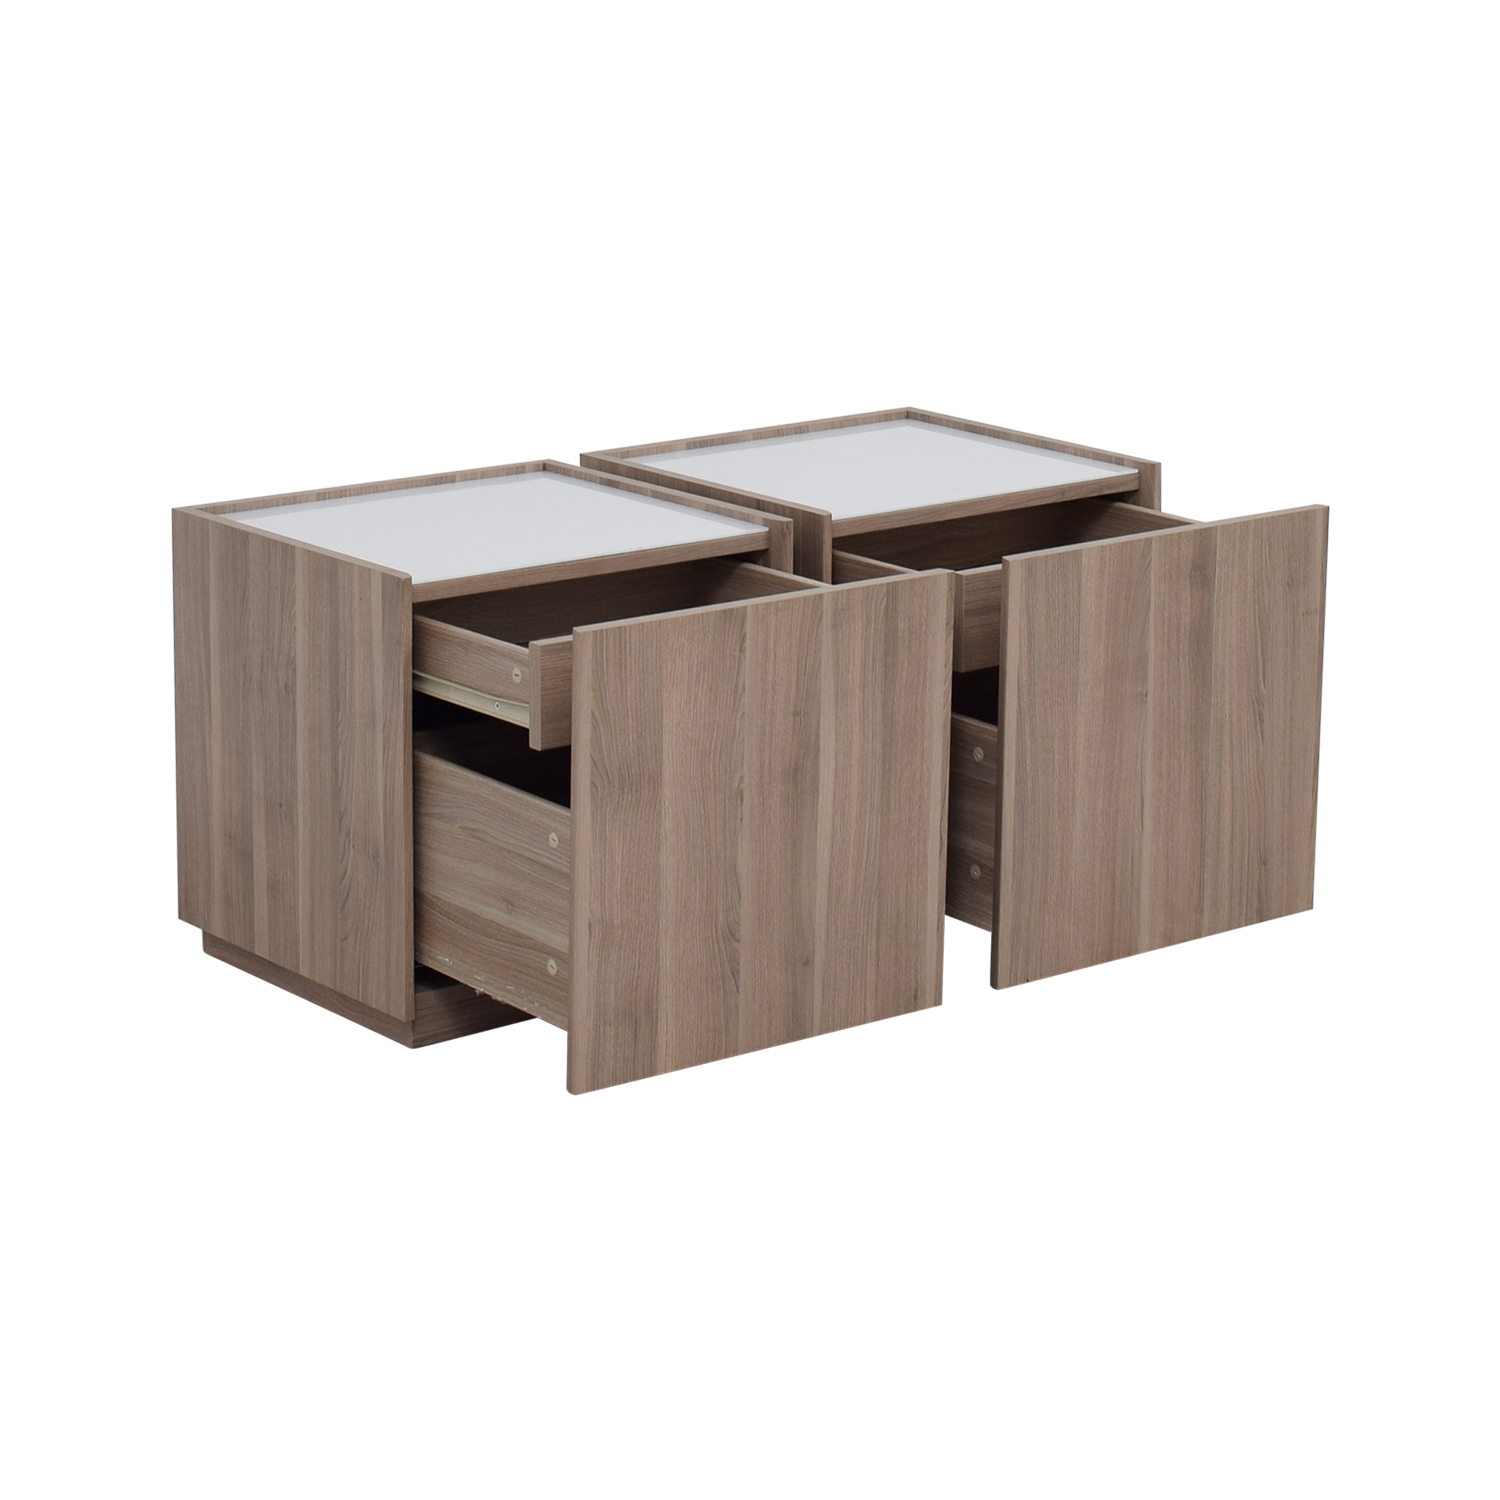 40% OFF IKEA IKEA Beech Wood Night Stands with Hidden Drawers